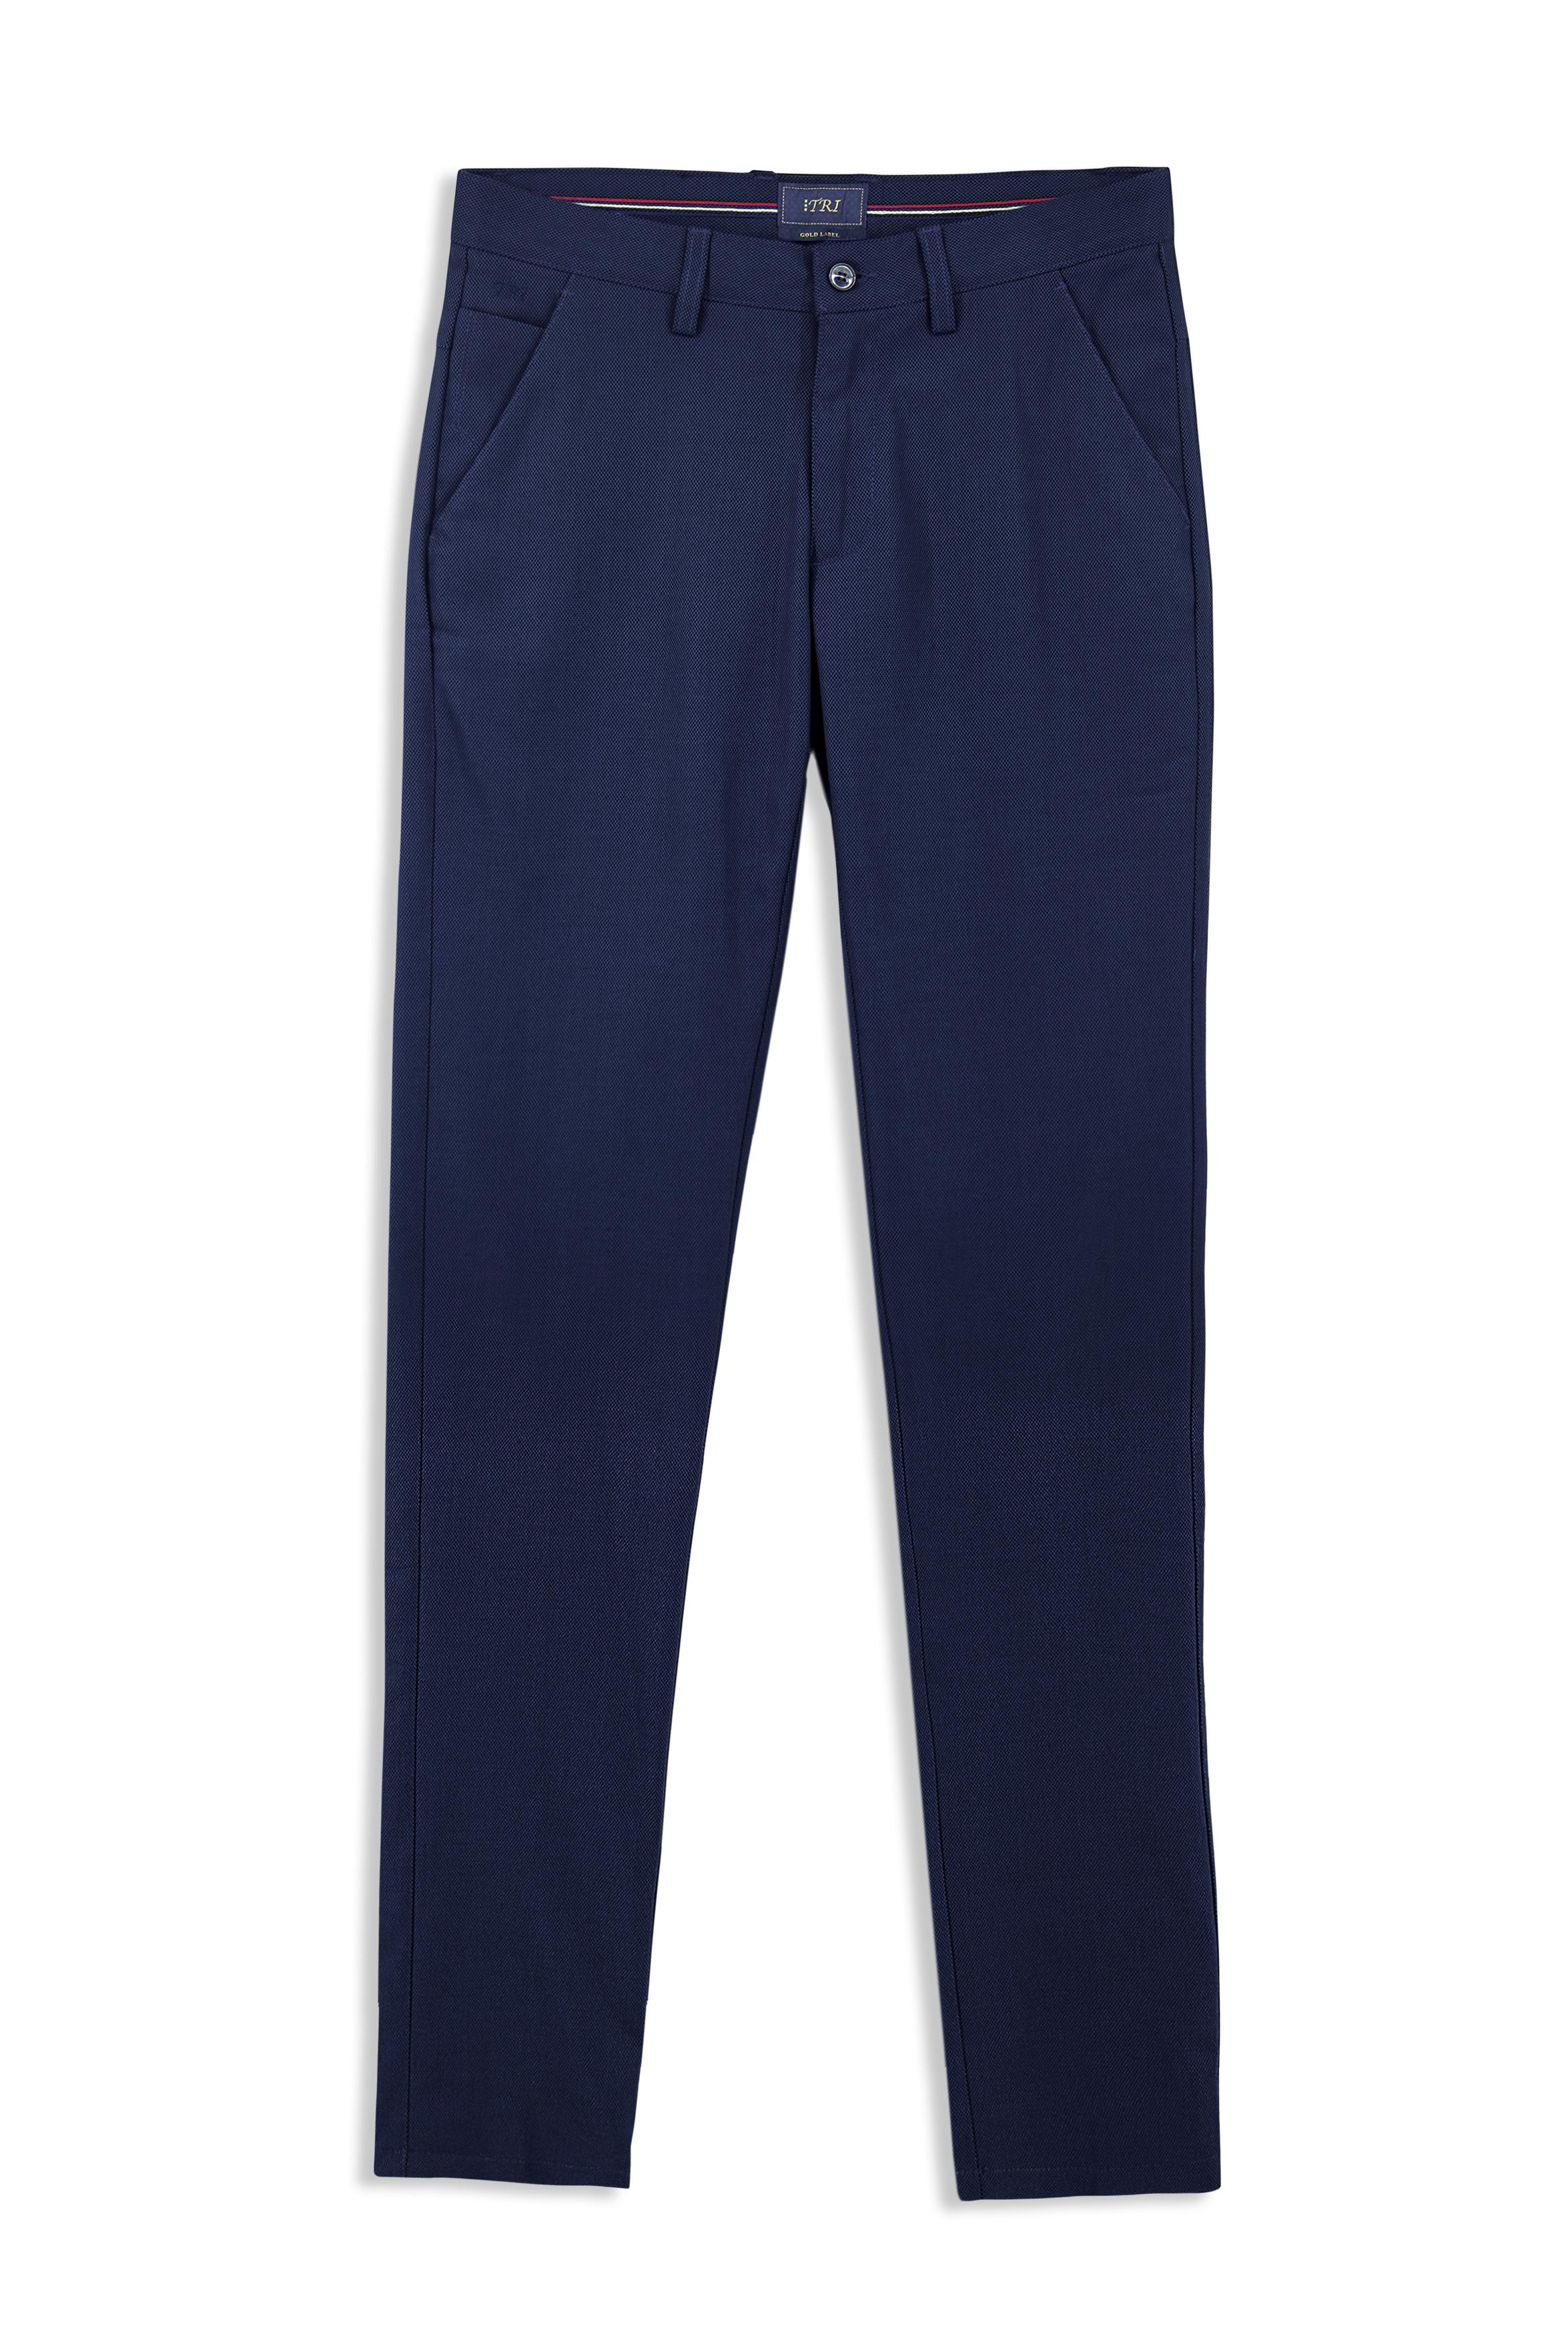 TRI GOLD LABEL PANT (GPC-10)